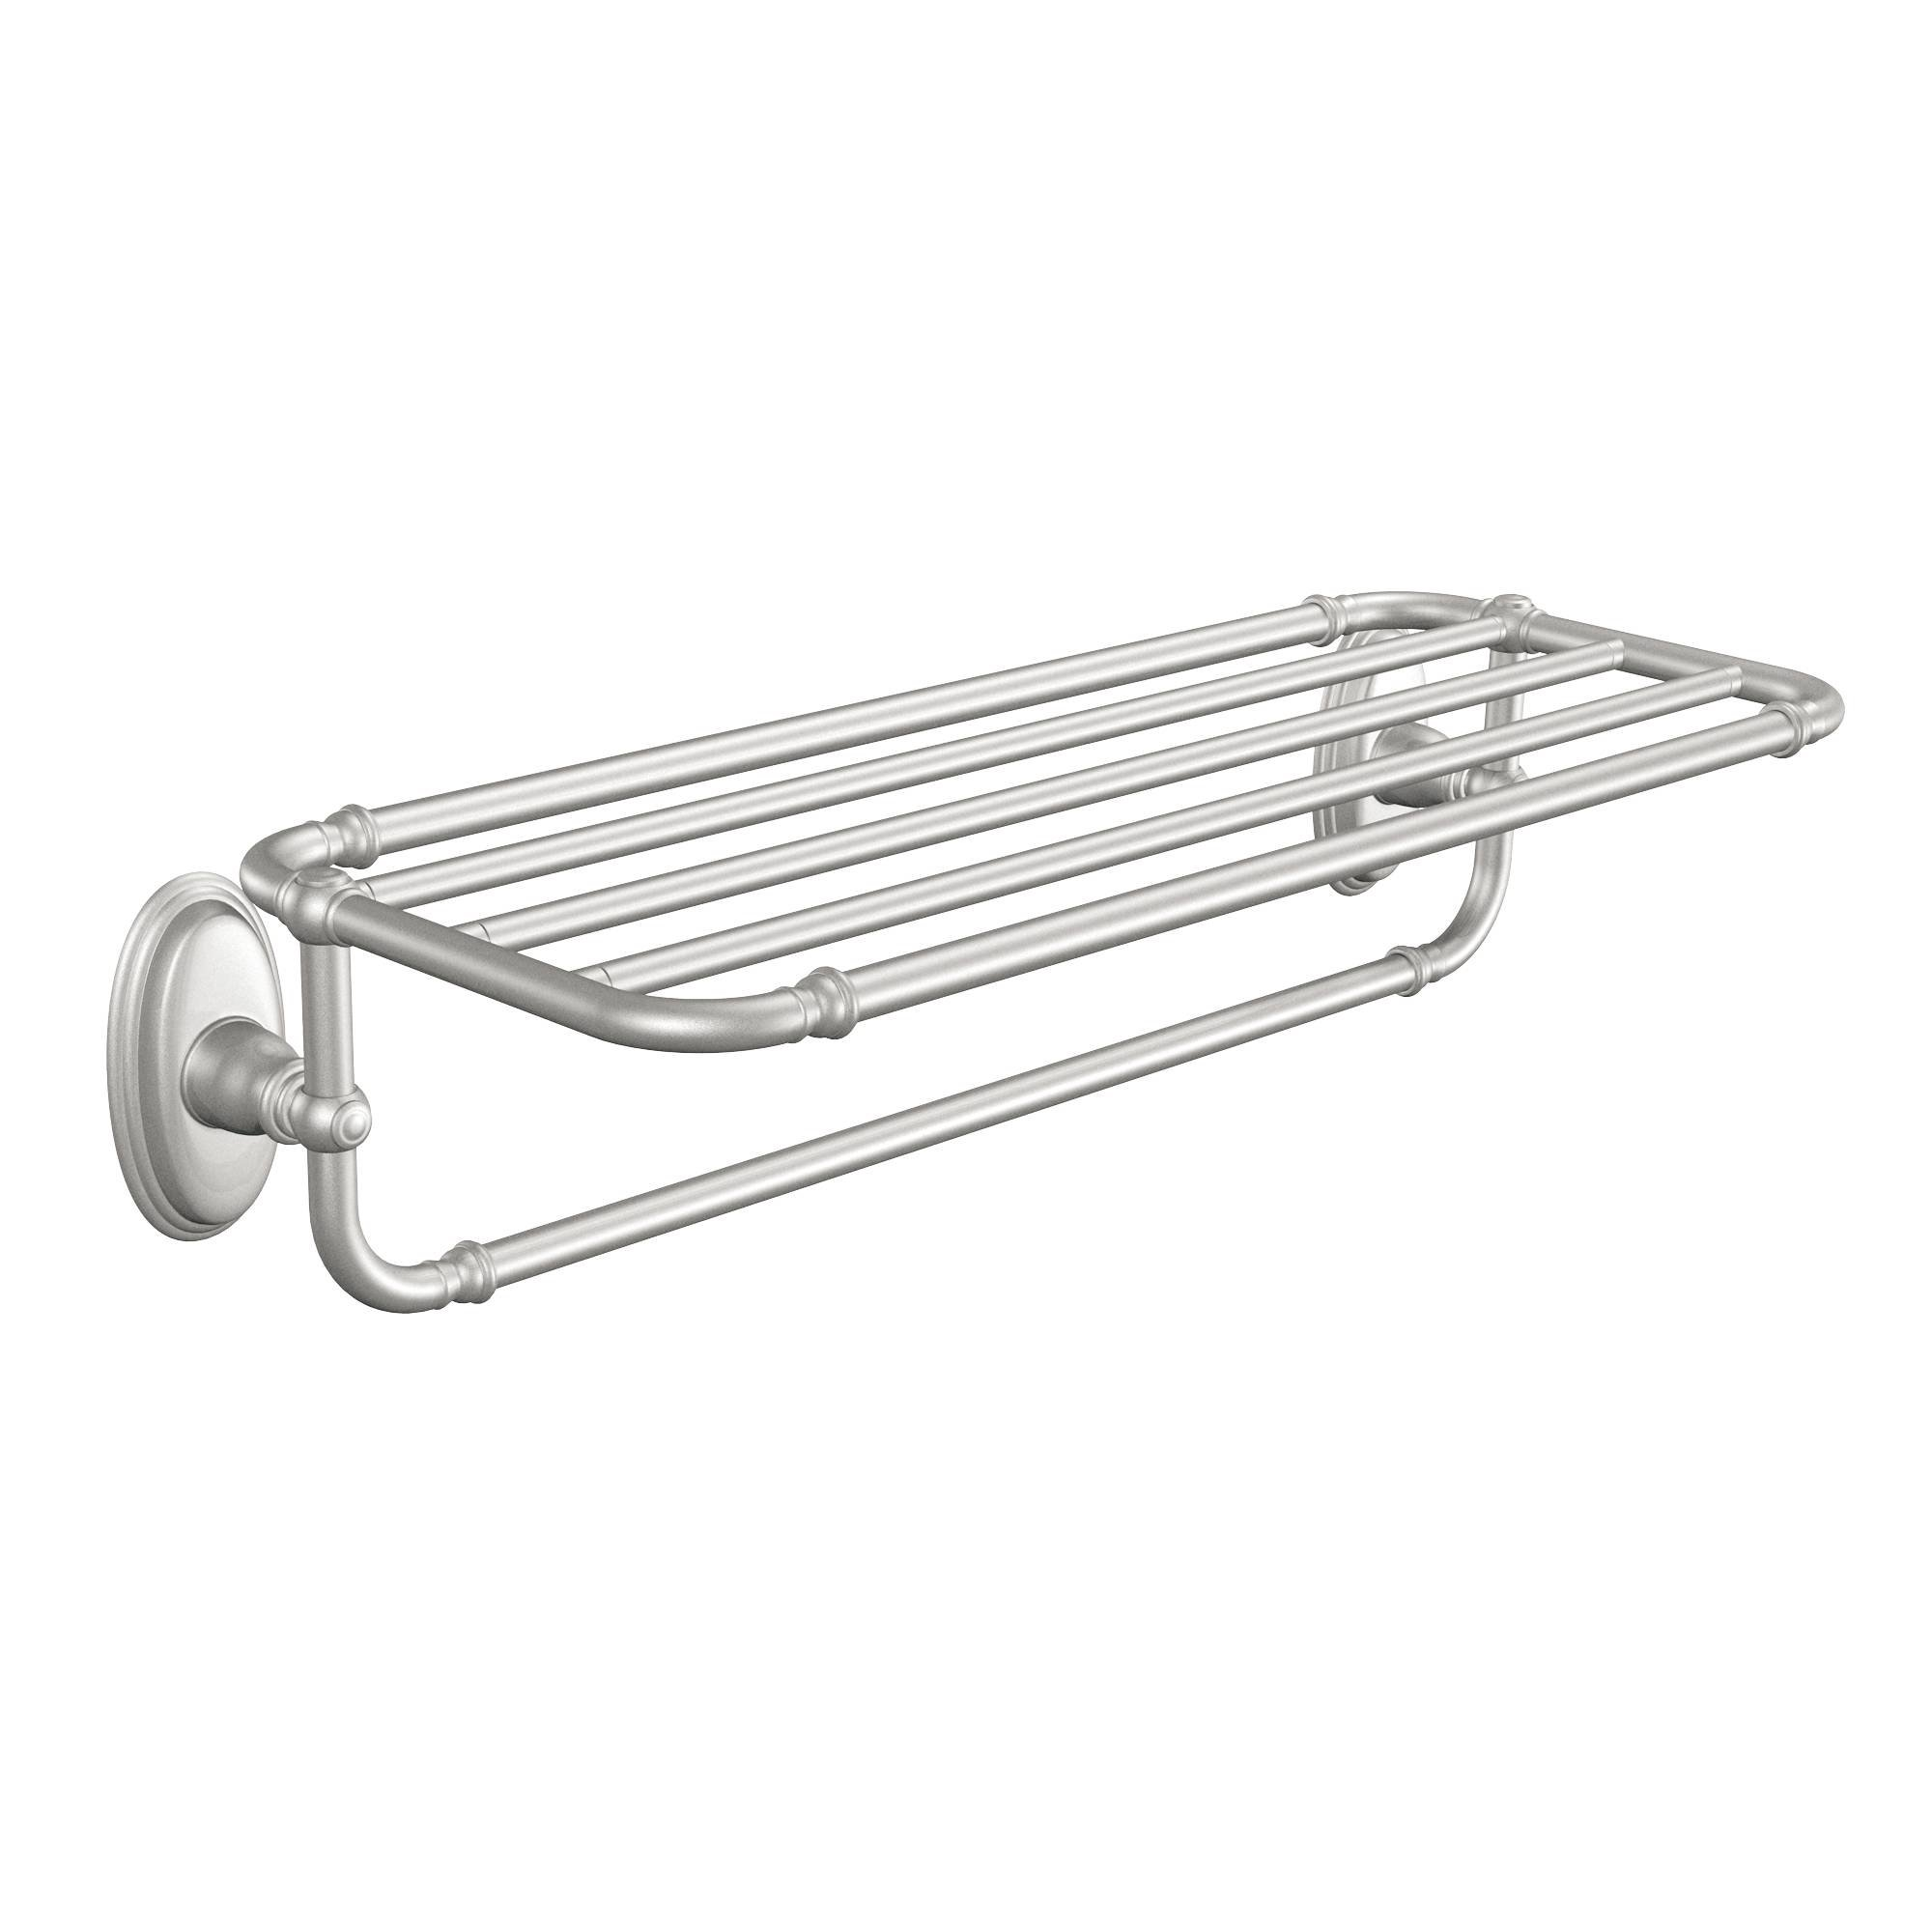 Moen YB5494BN Kingsley Bathroom Towel Shelf, Brushed Nickel